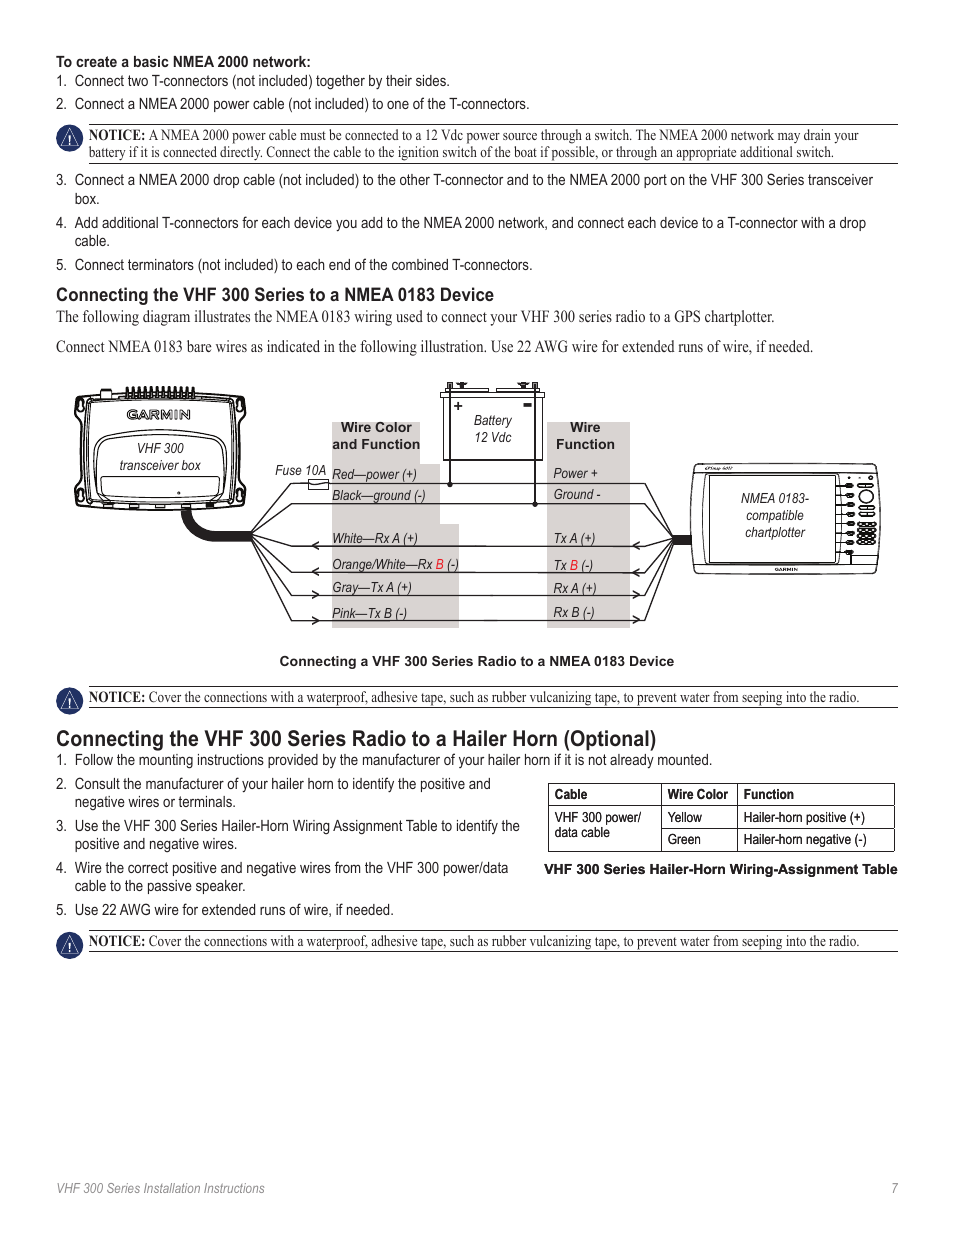 medium resolution of connecting the radio to a hailer horn garmin vhf ghs 10i user manual page 7 12